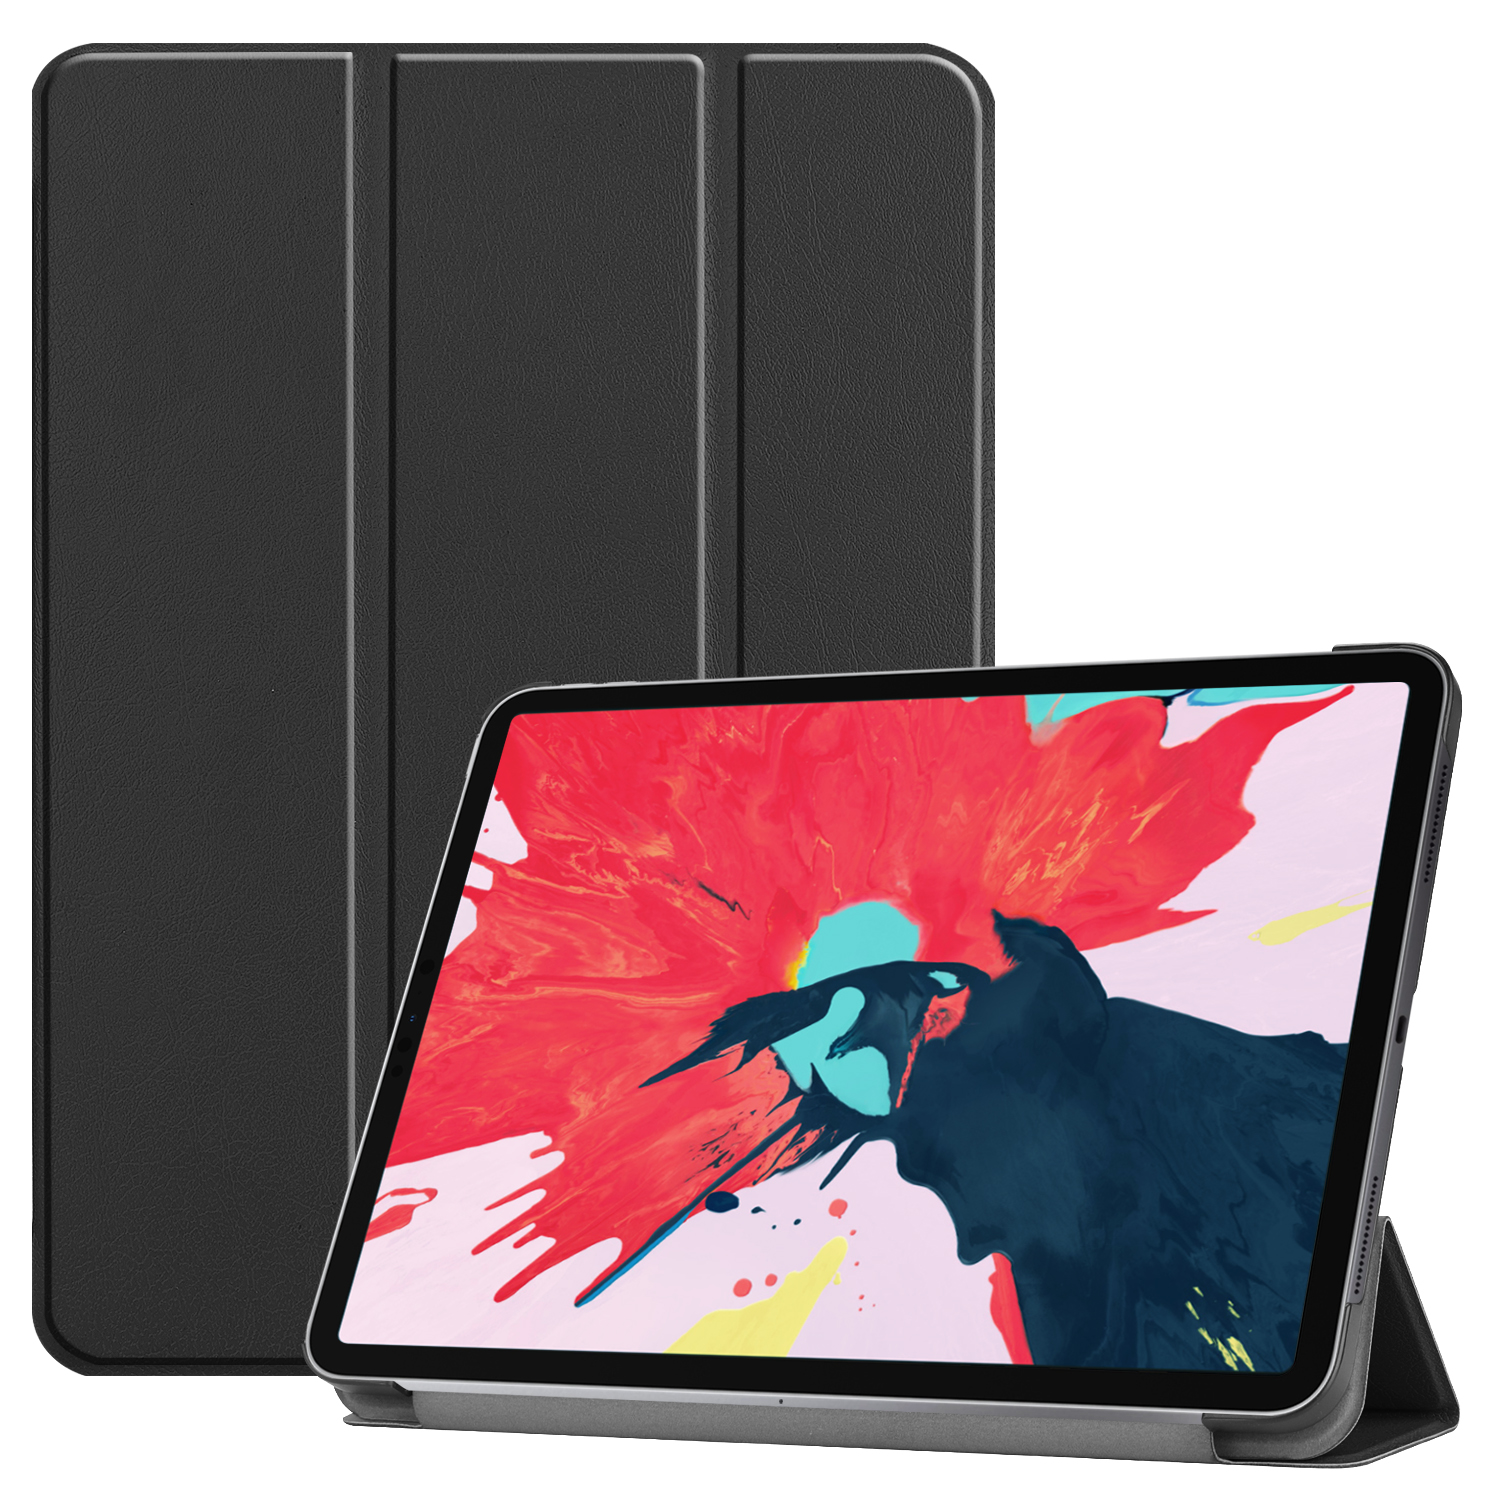 Tablet PC Protective Case Ultra-thin Smart Cover for iPad pro 11(2020) black